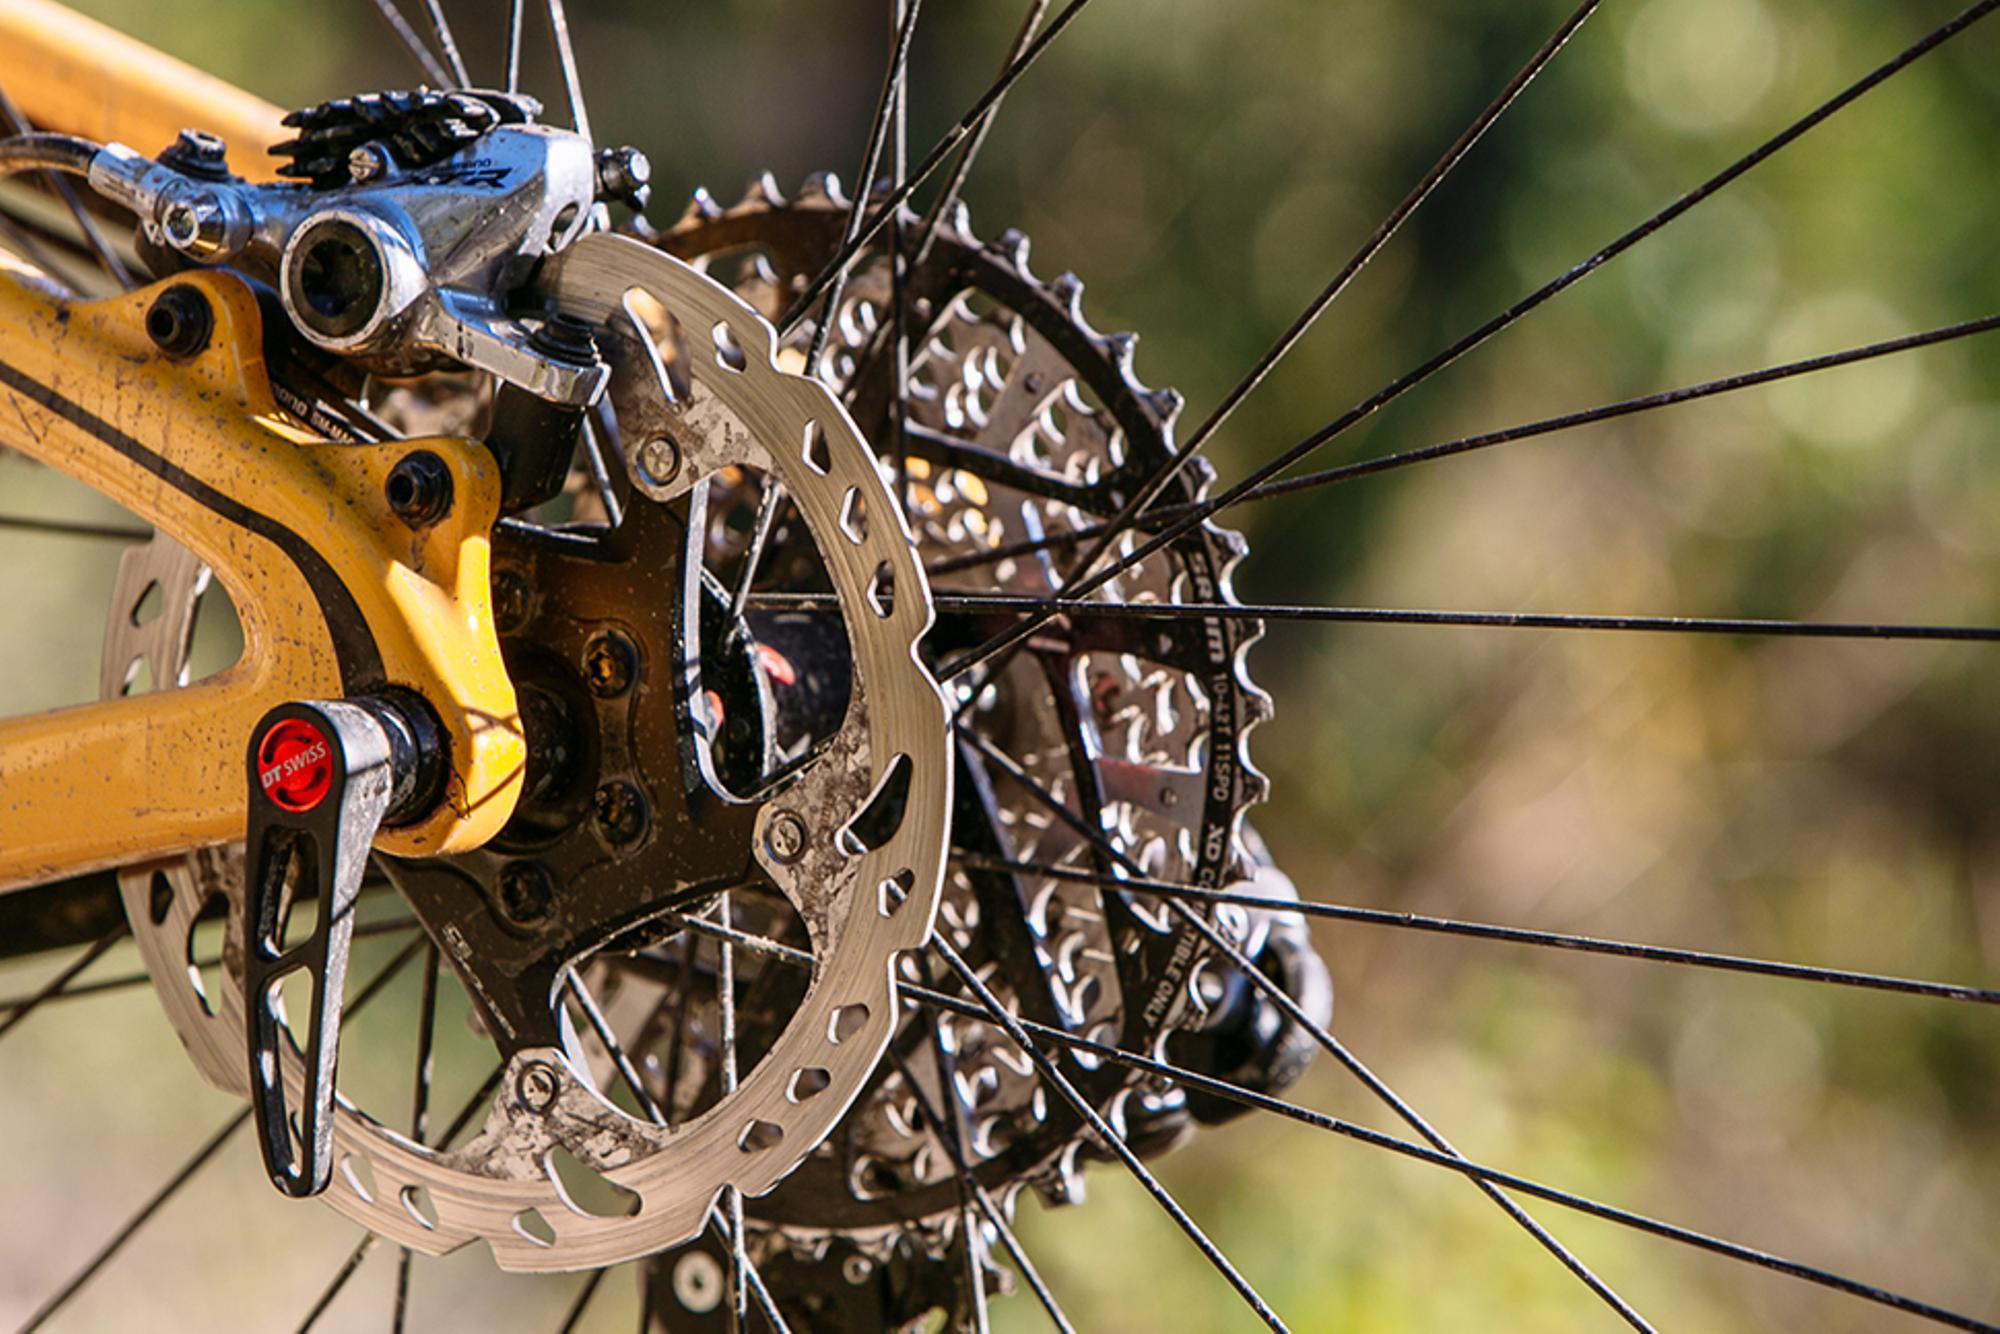 The cassette is the same size as the rotor!